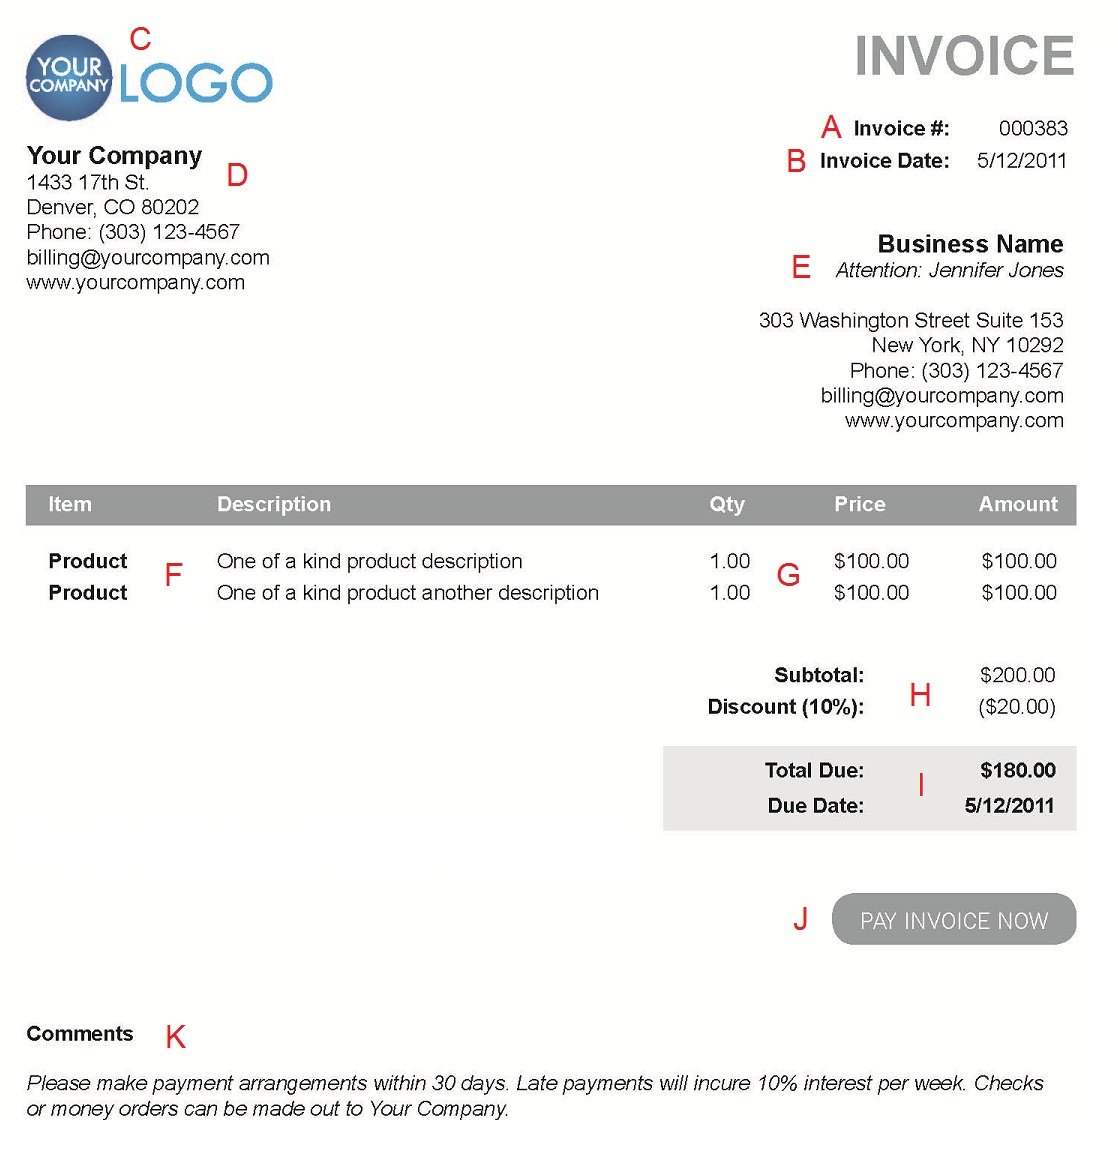 Amatospizzaus  Personable The  Different Sections Of An Electronic Payment Invoice With Heavenly A  With Delightful What Is Invoice Management Also Online Invoice Format In Addition Proforma Invoice Model And Invoice Law As Well As Invoice  Additionally Tax Invoice Gst From Paysimplecom With Amatospizzaus  Heavenly The  Different Sections Of An Electronic Payment Invoice With Delightful A  And Personable What Is Invoice Management Also Online Invoice Format In Addition Proforma Invoice Model From Paysimplecom